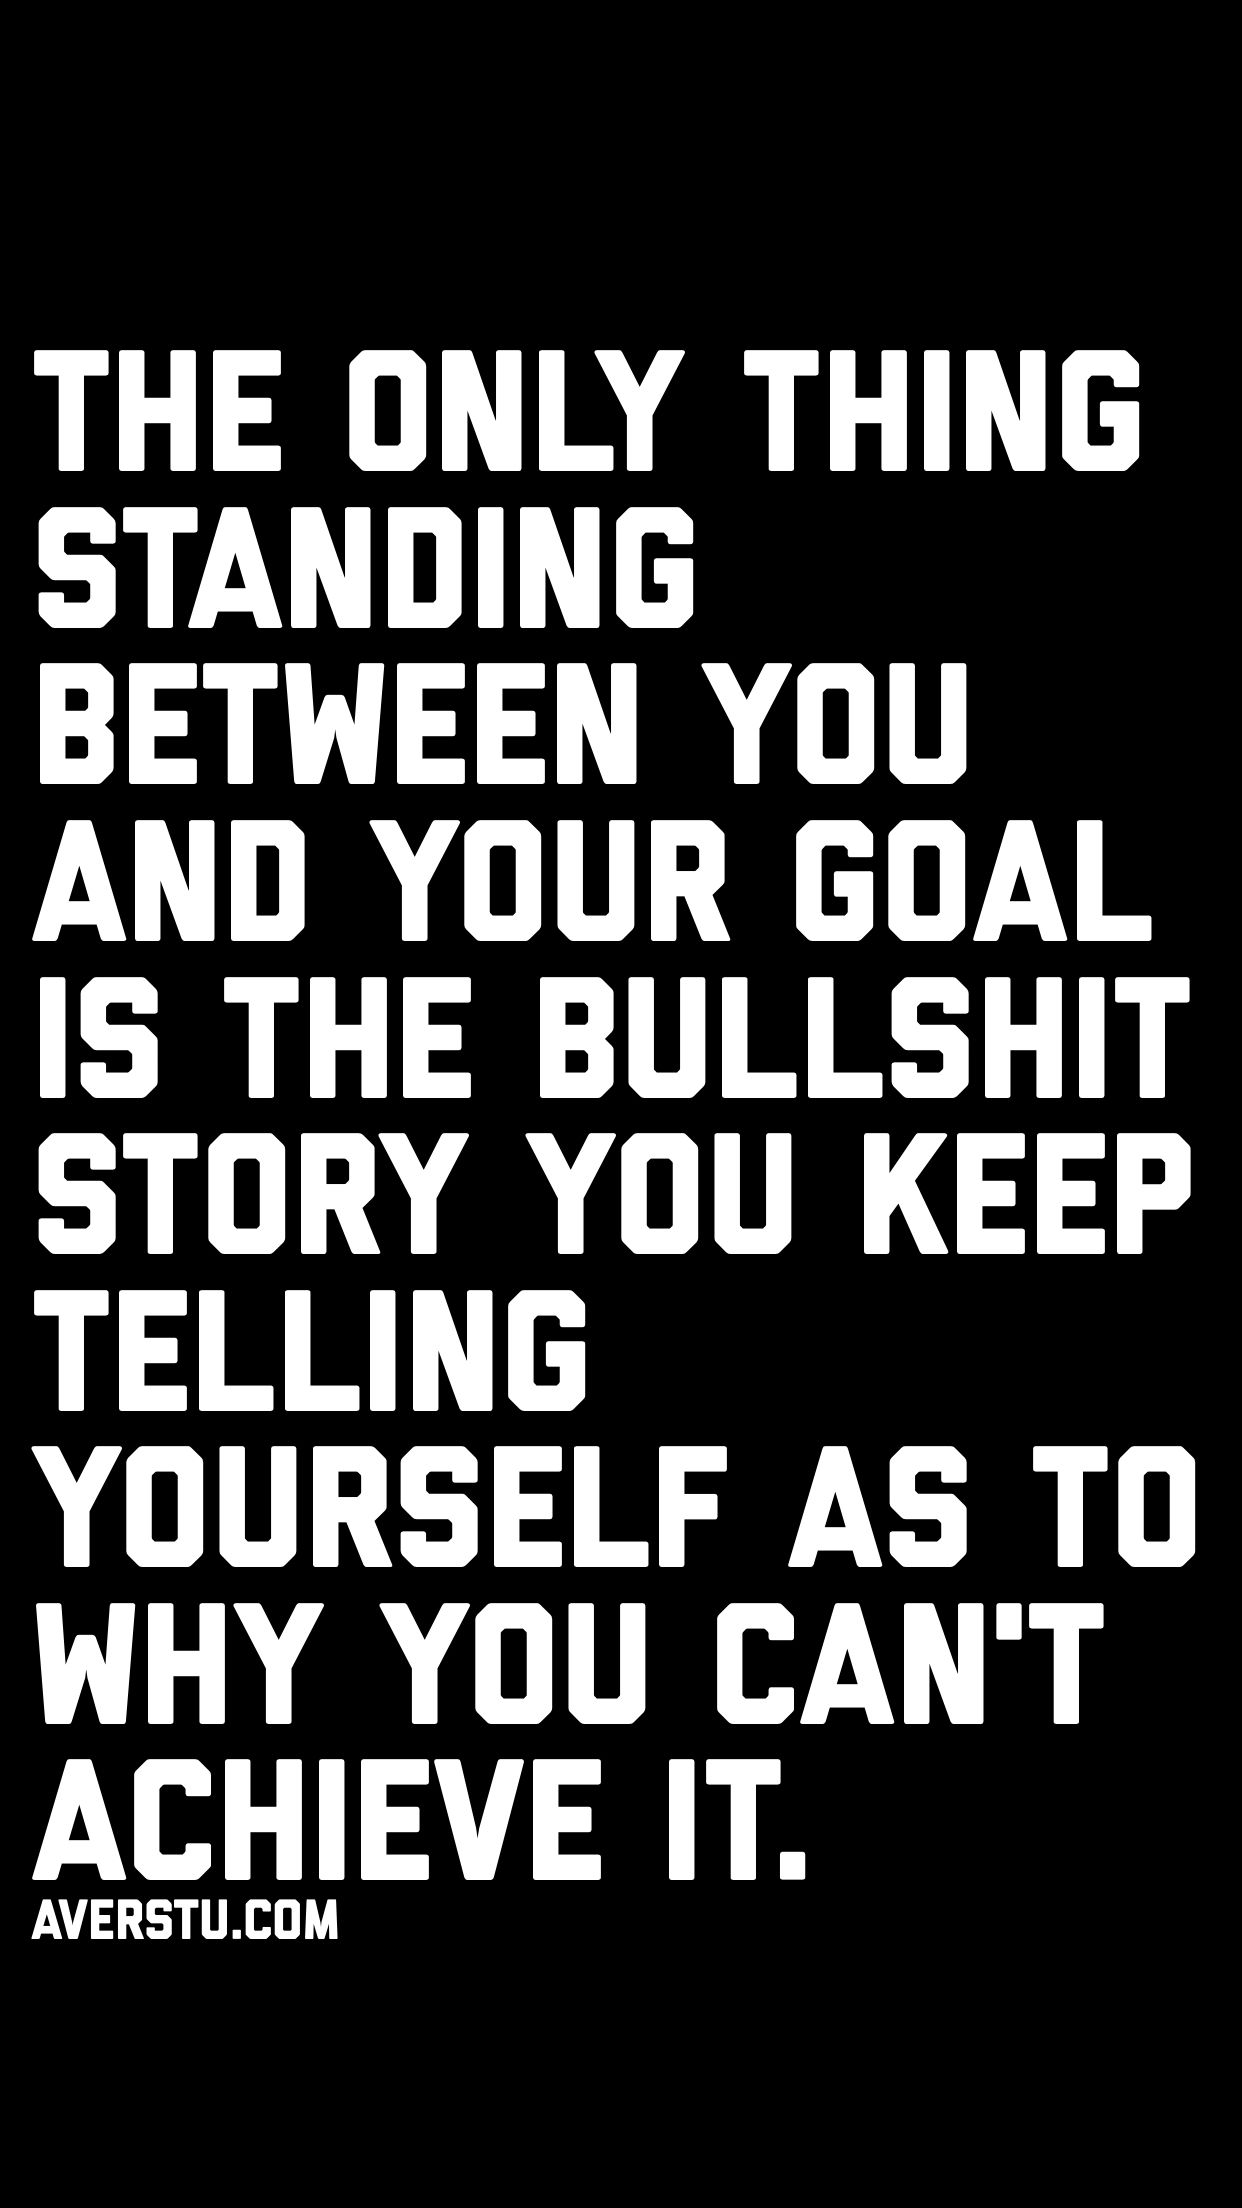 The Only Thing Standing Between You And Your Goal Is The Bullshit